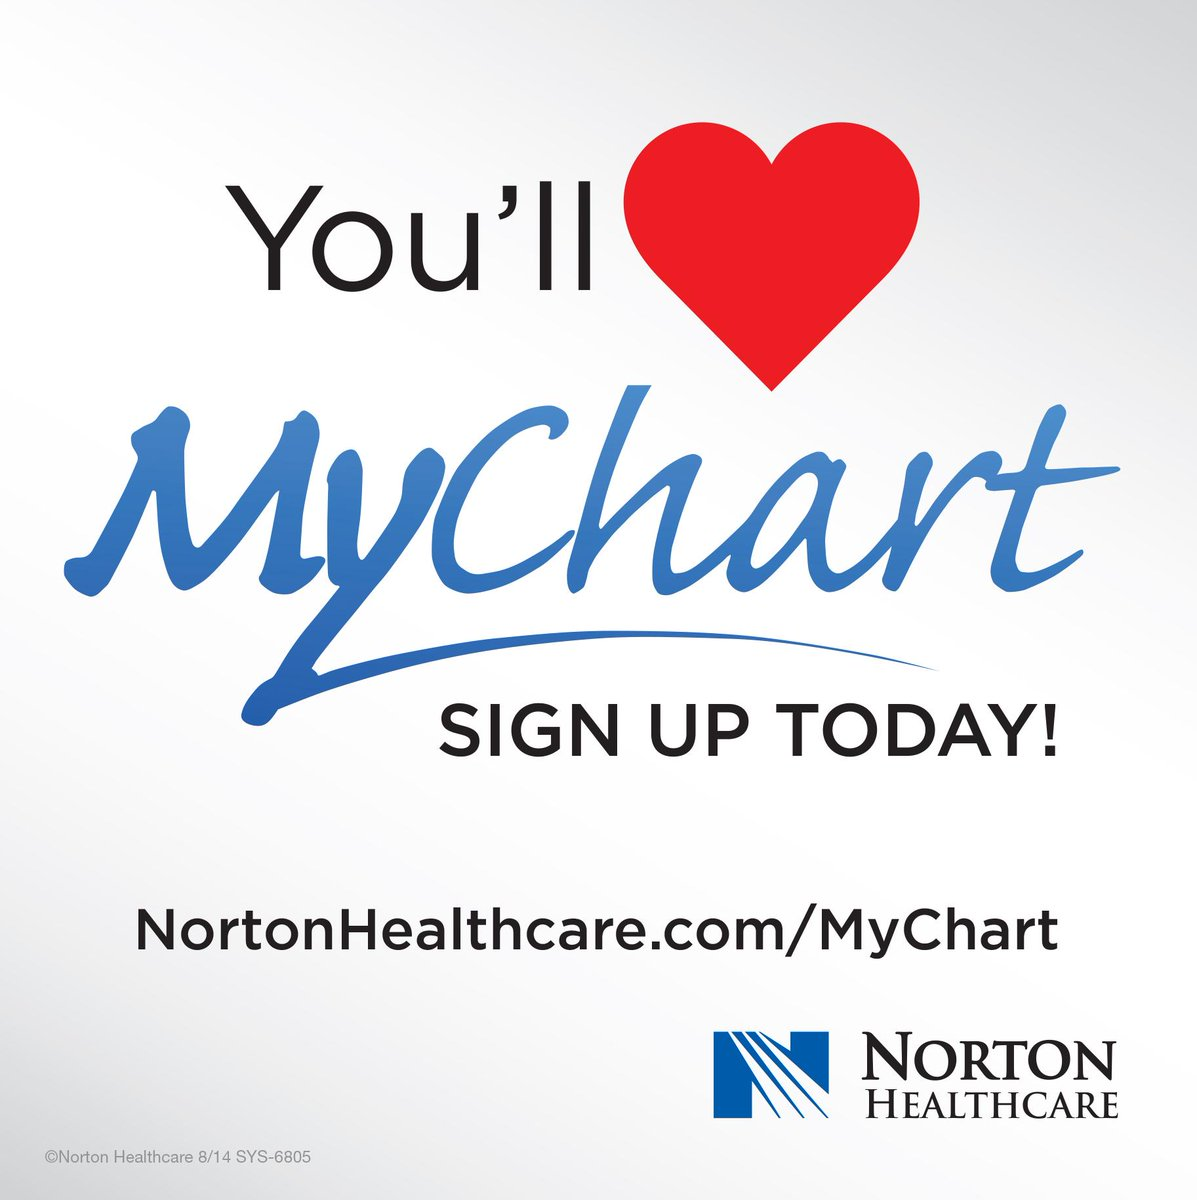 Norton healthcare on twitter signed up for mychart view test